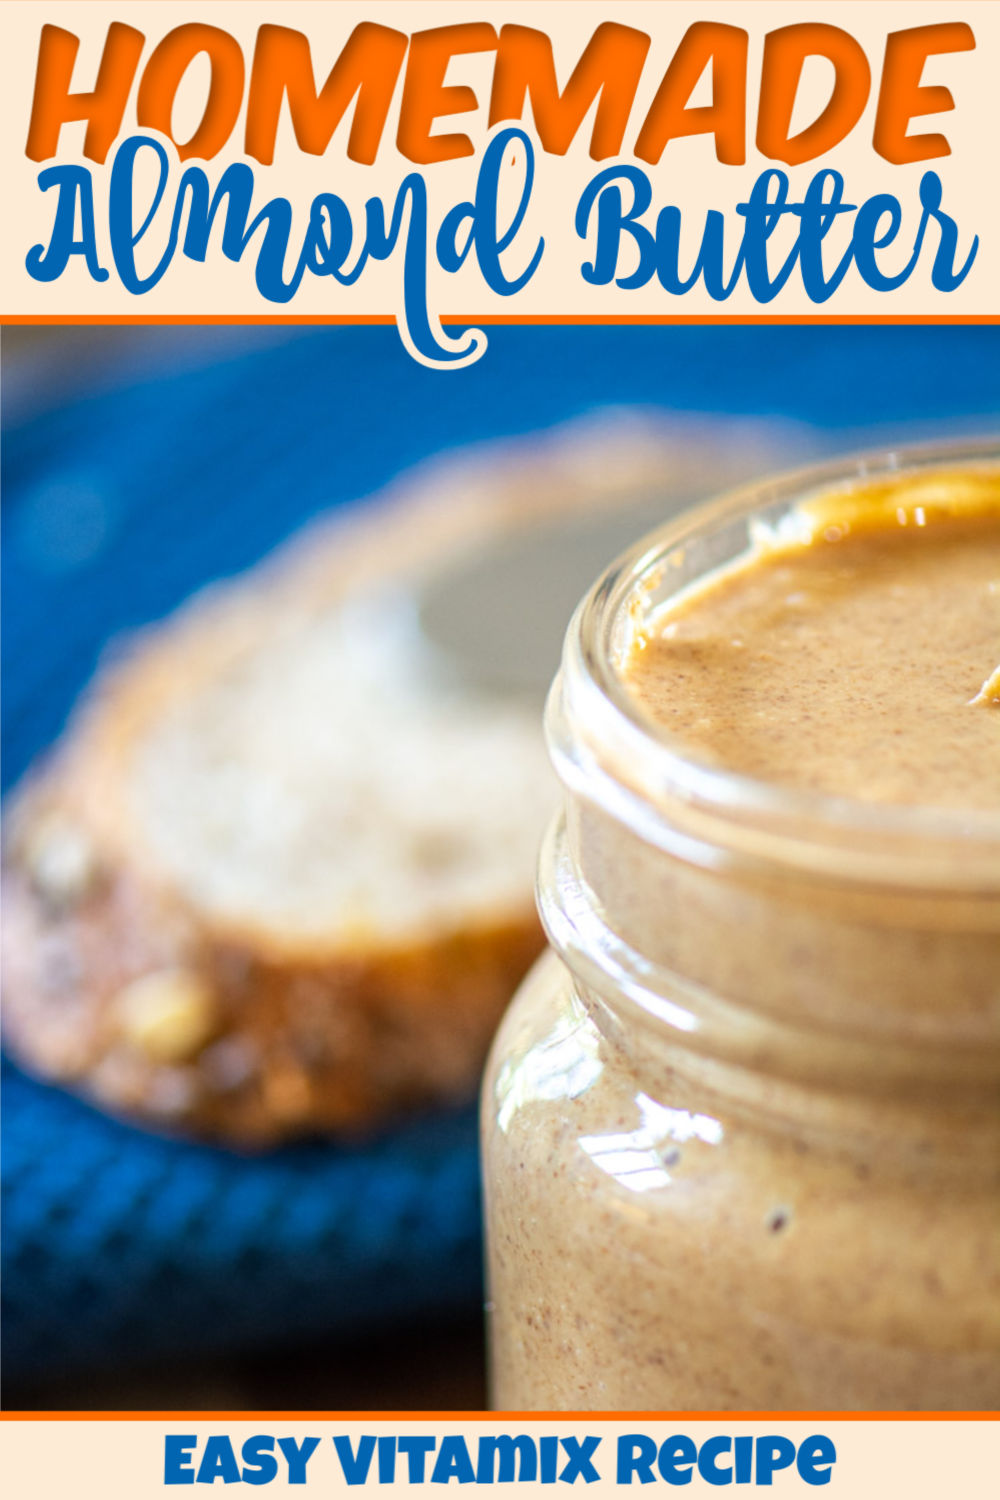 Amazingly simple and delicious homemade almond butter. This peanut butter alternative is extremely healthy and easy to make. One of the best nut butters around. Make it using a food processor or Vitamix to serve on bread or fresh fruits!